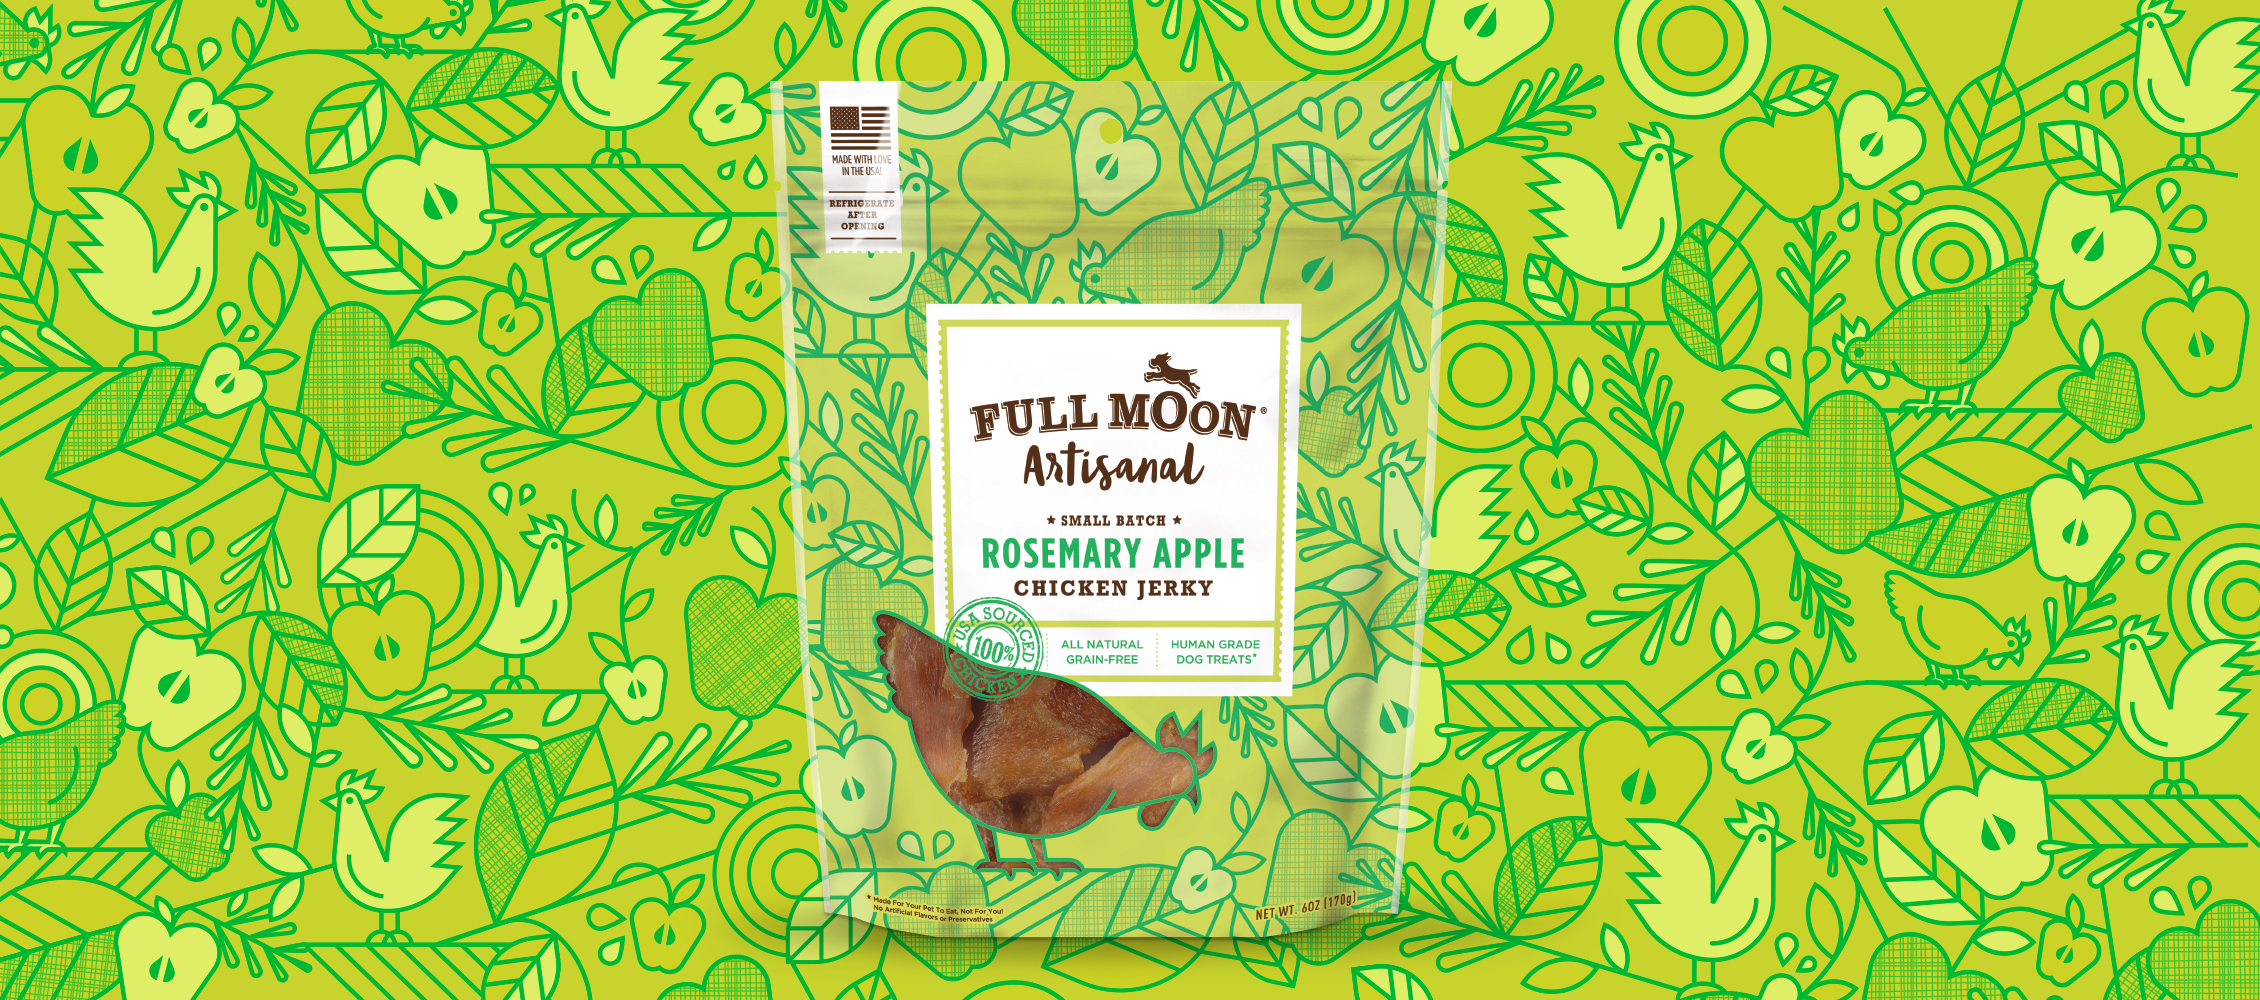 Full Moon Branding | Packaging Design